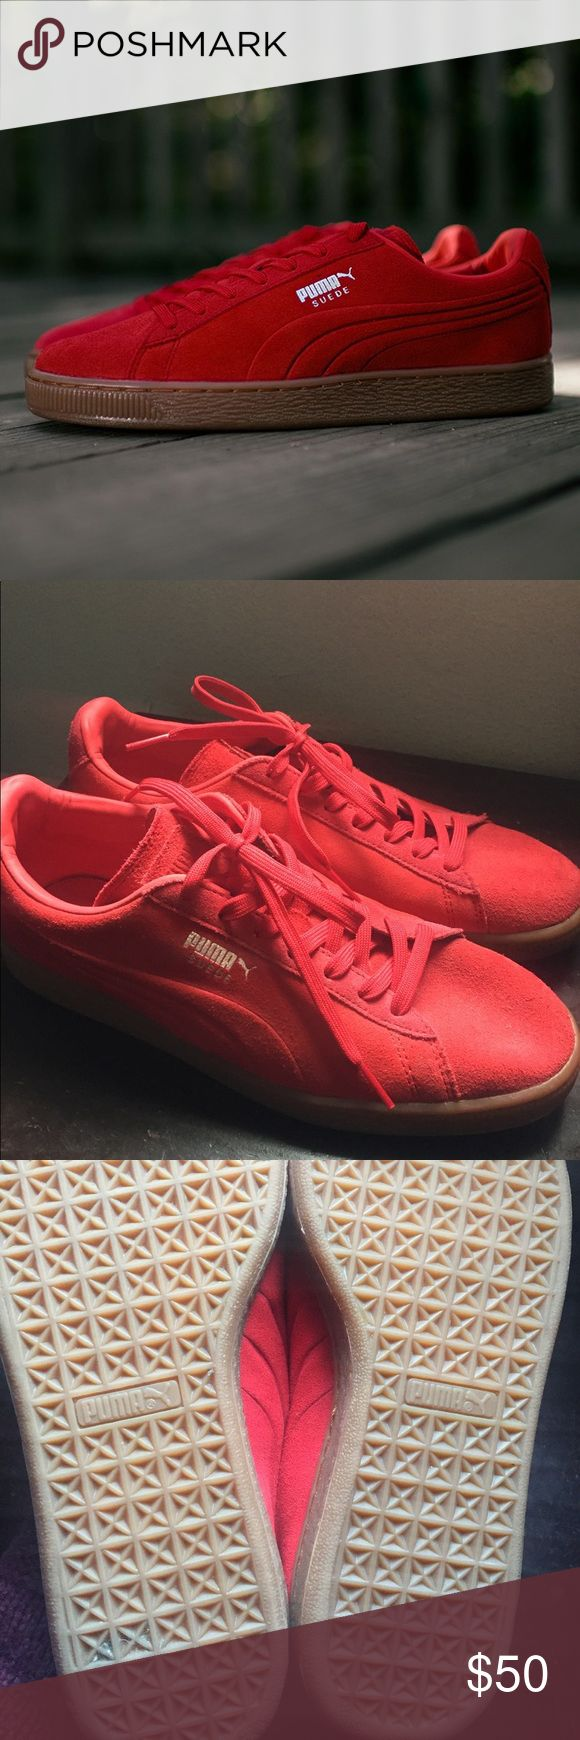 Puma Suede Eco OrthoLite Sneakers Red Puma Suede Eco OrthoLite shoes with gum sole. Worn twice. In really good condition. 8.5 in Men's/ 10 in women's. Ships fast! Puma Shoes Sneakers